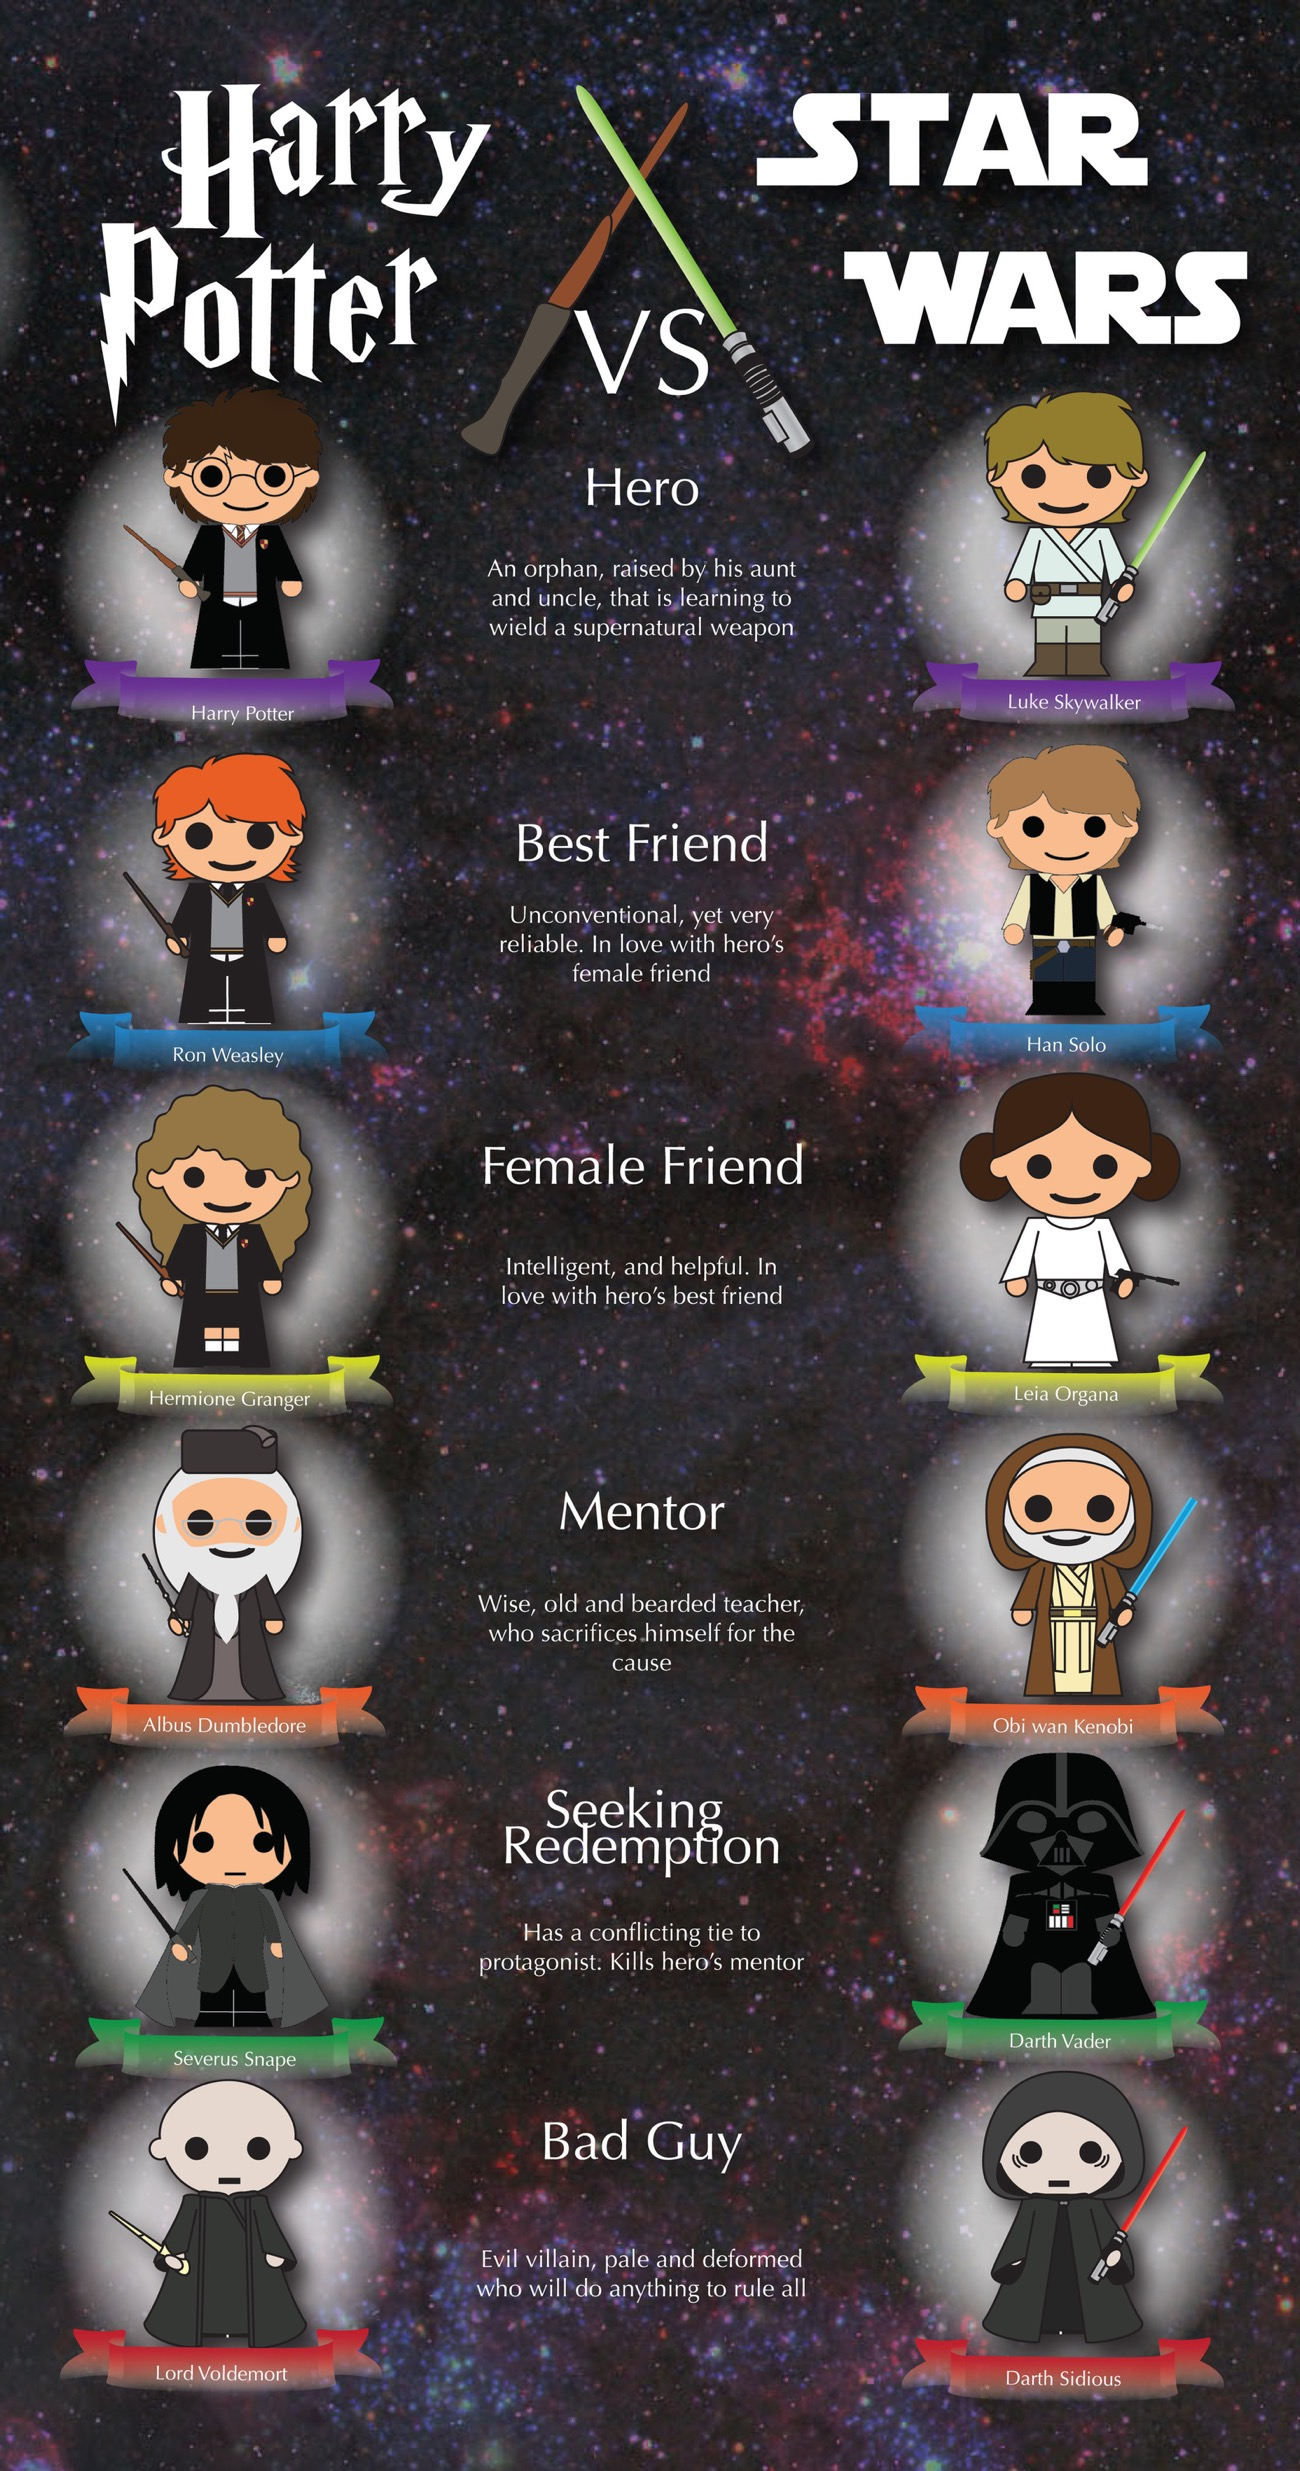 Harry Potter vs. Star Wars #infographic